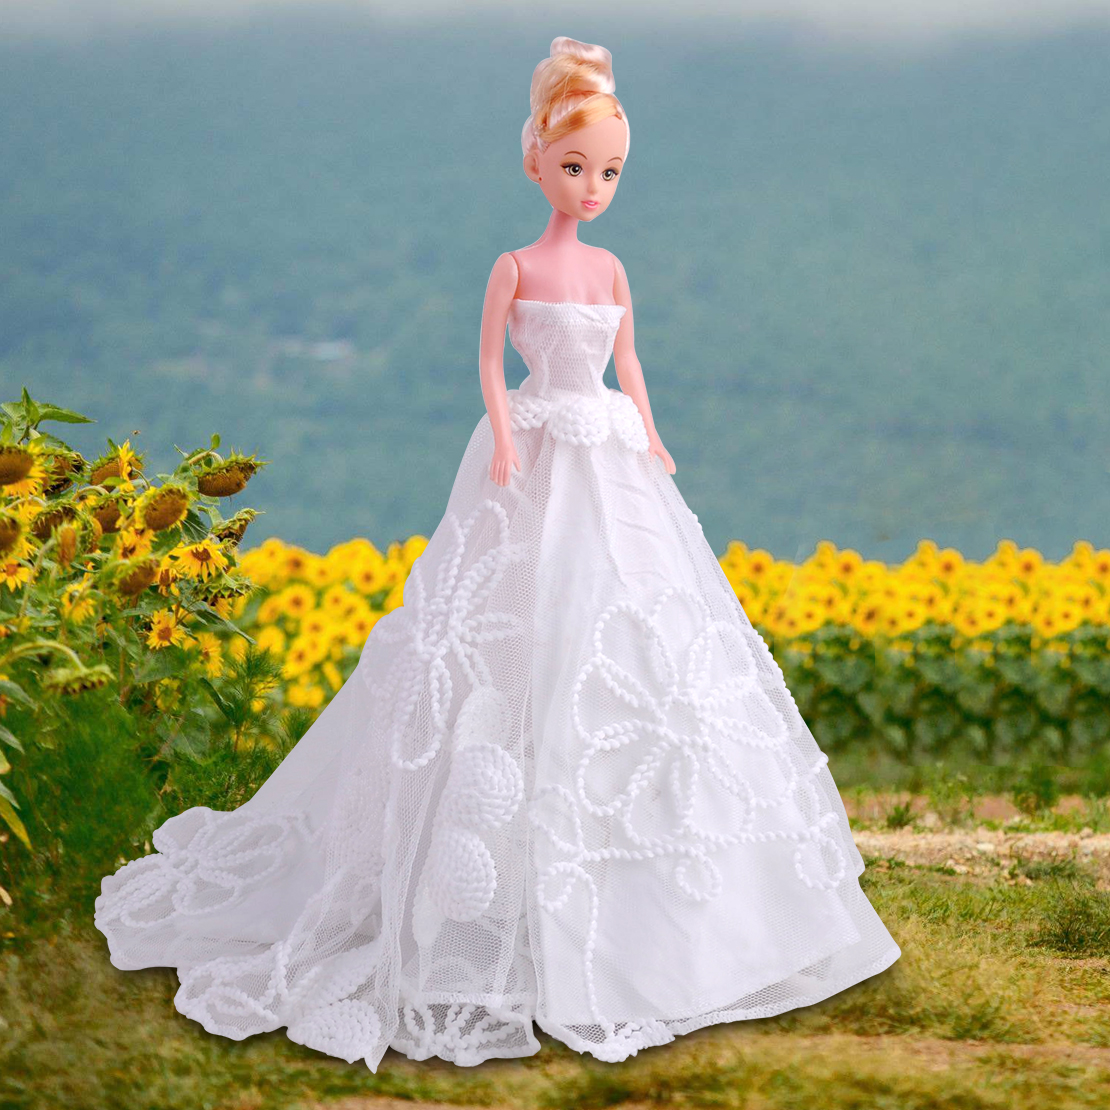 White Bridal Princess Dress Gown Wedding Evening Clothes for Barbie ...